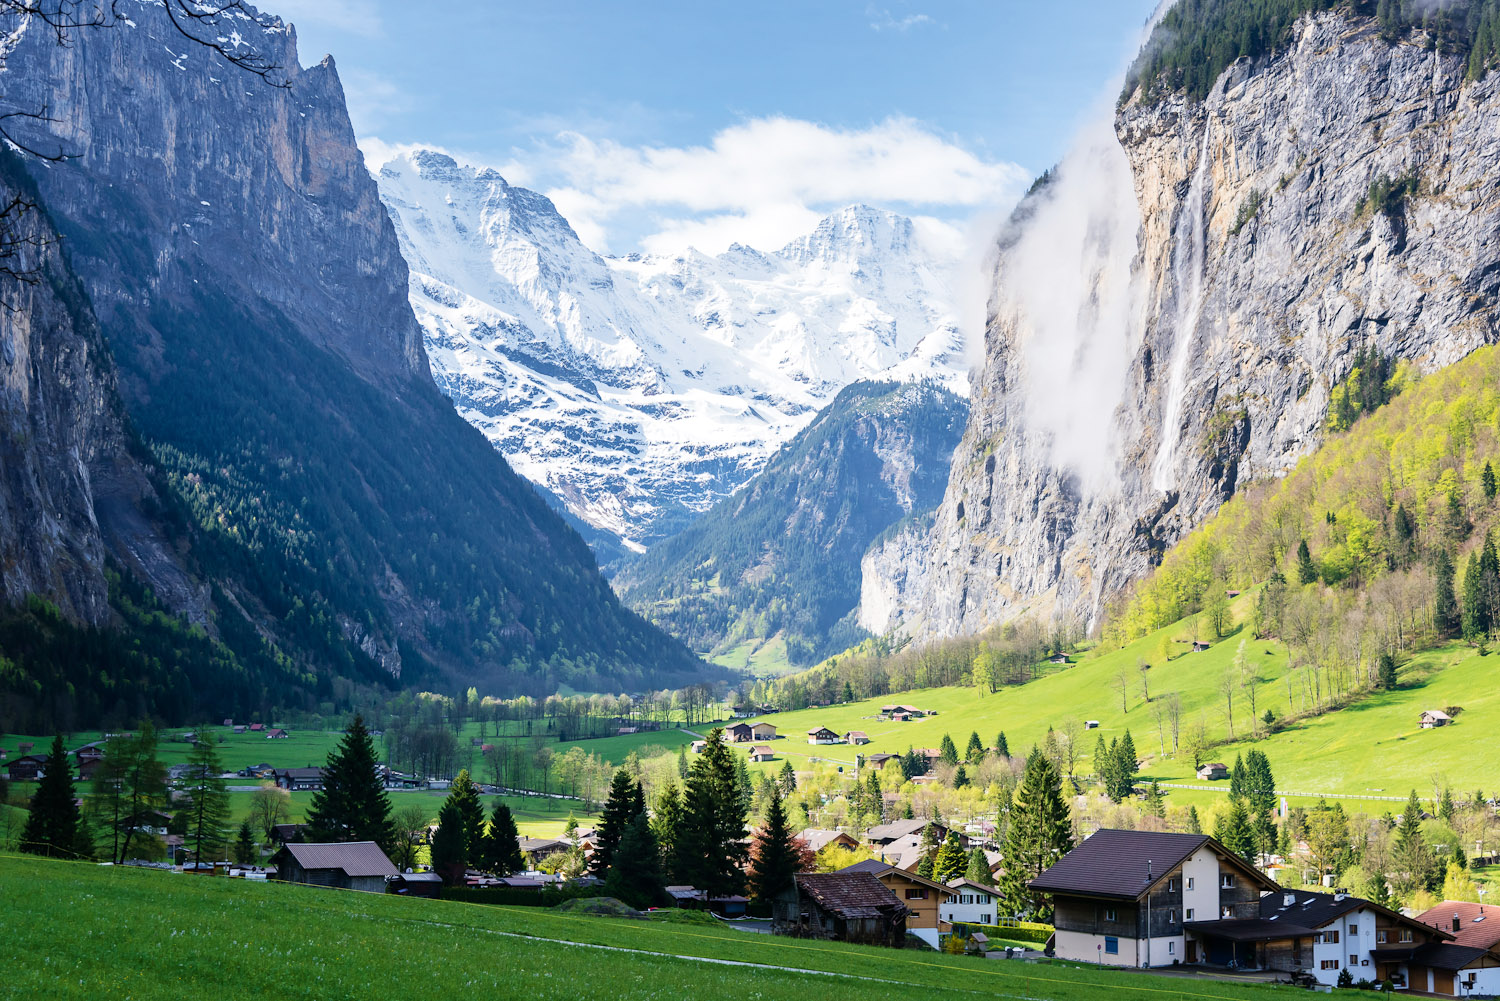 Travel Agency Wallpaper Hd The Ultimate Road Trip Through The Swiss Alps